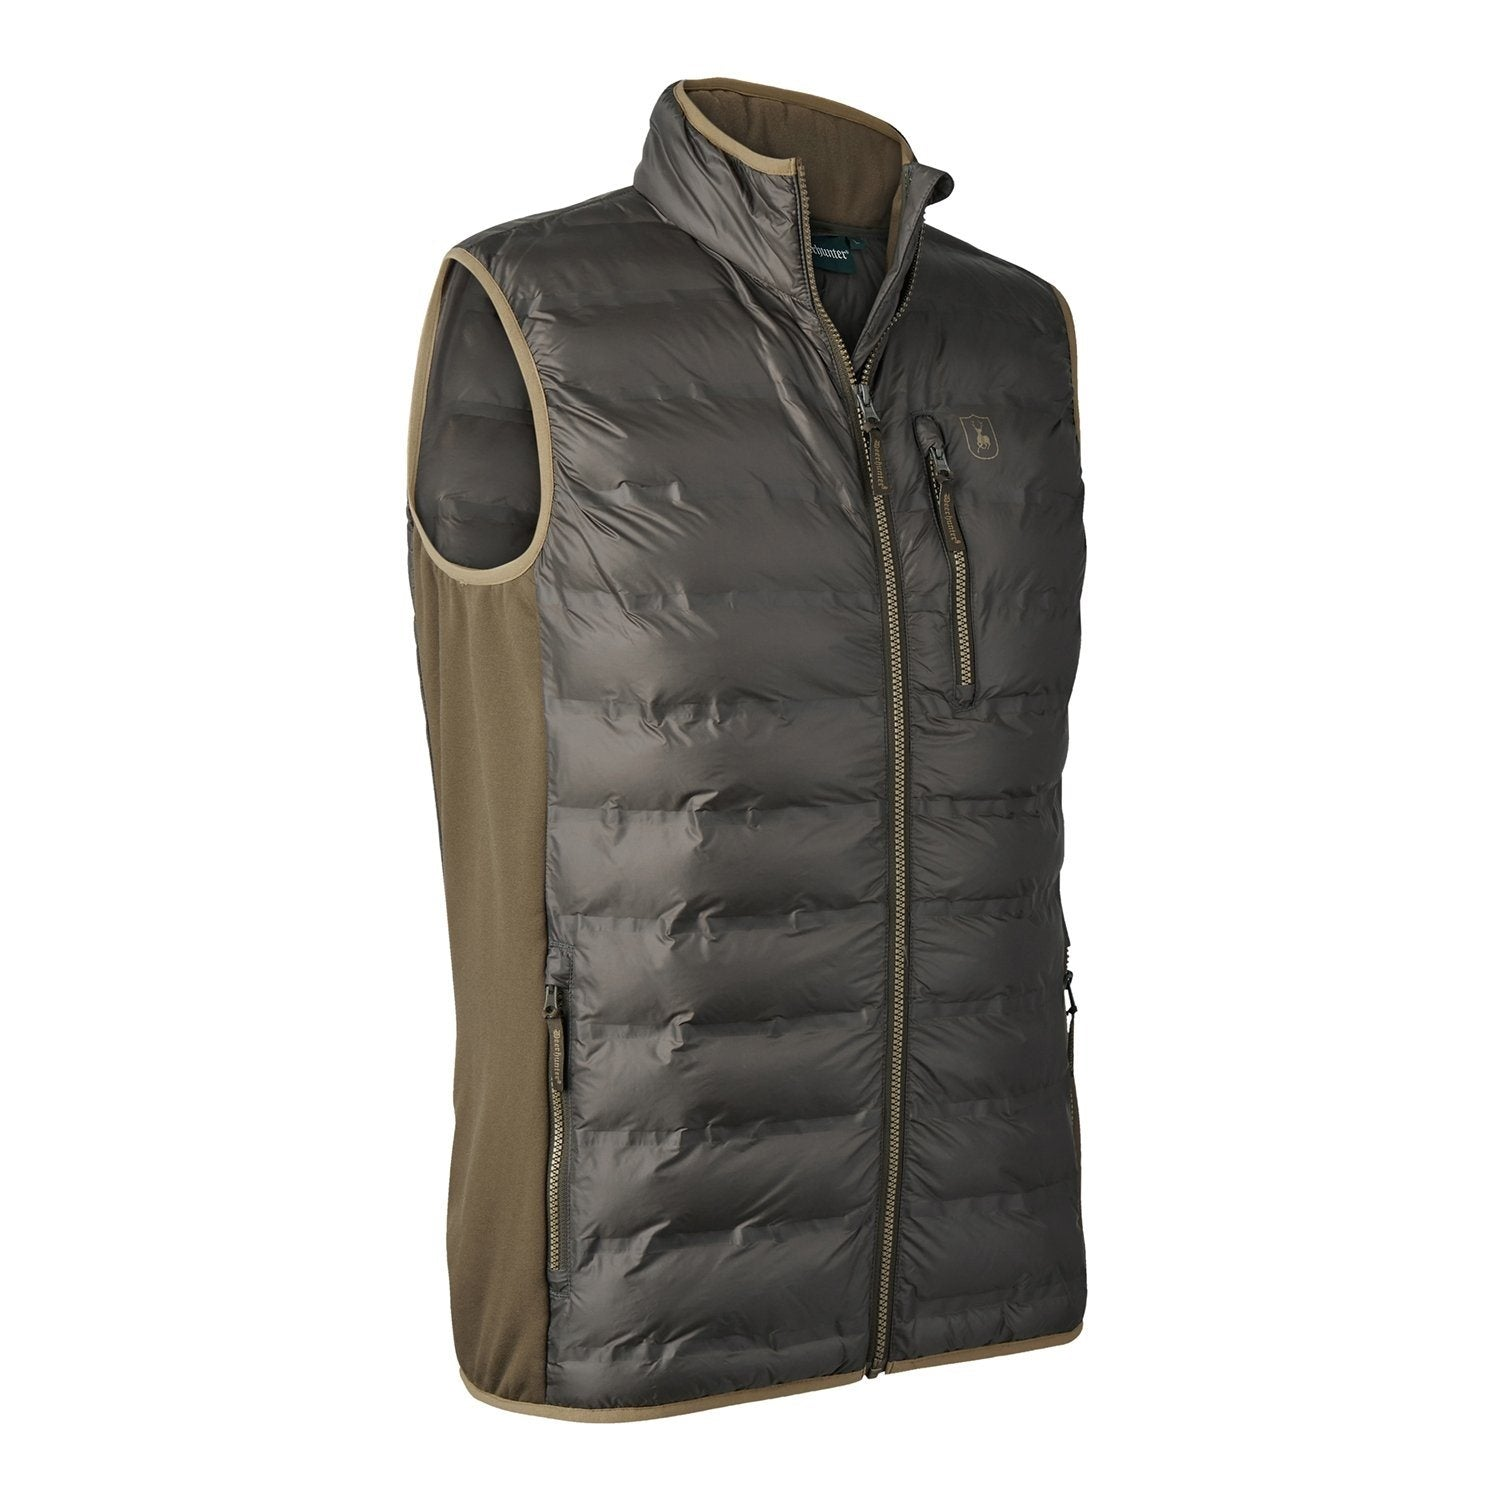 Image of Deerhunter - Deer Vatteret Vest